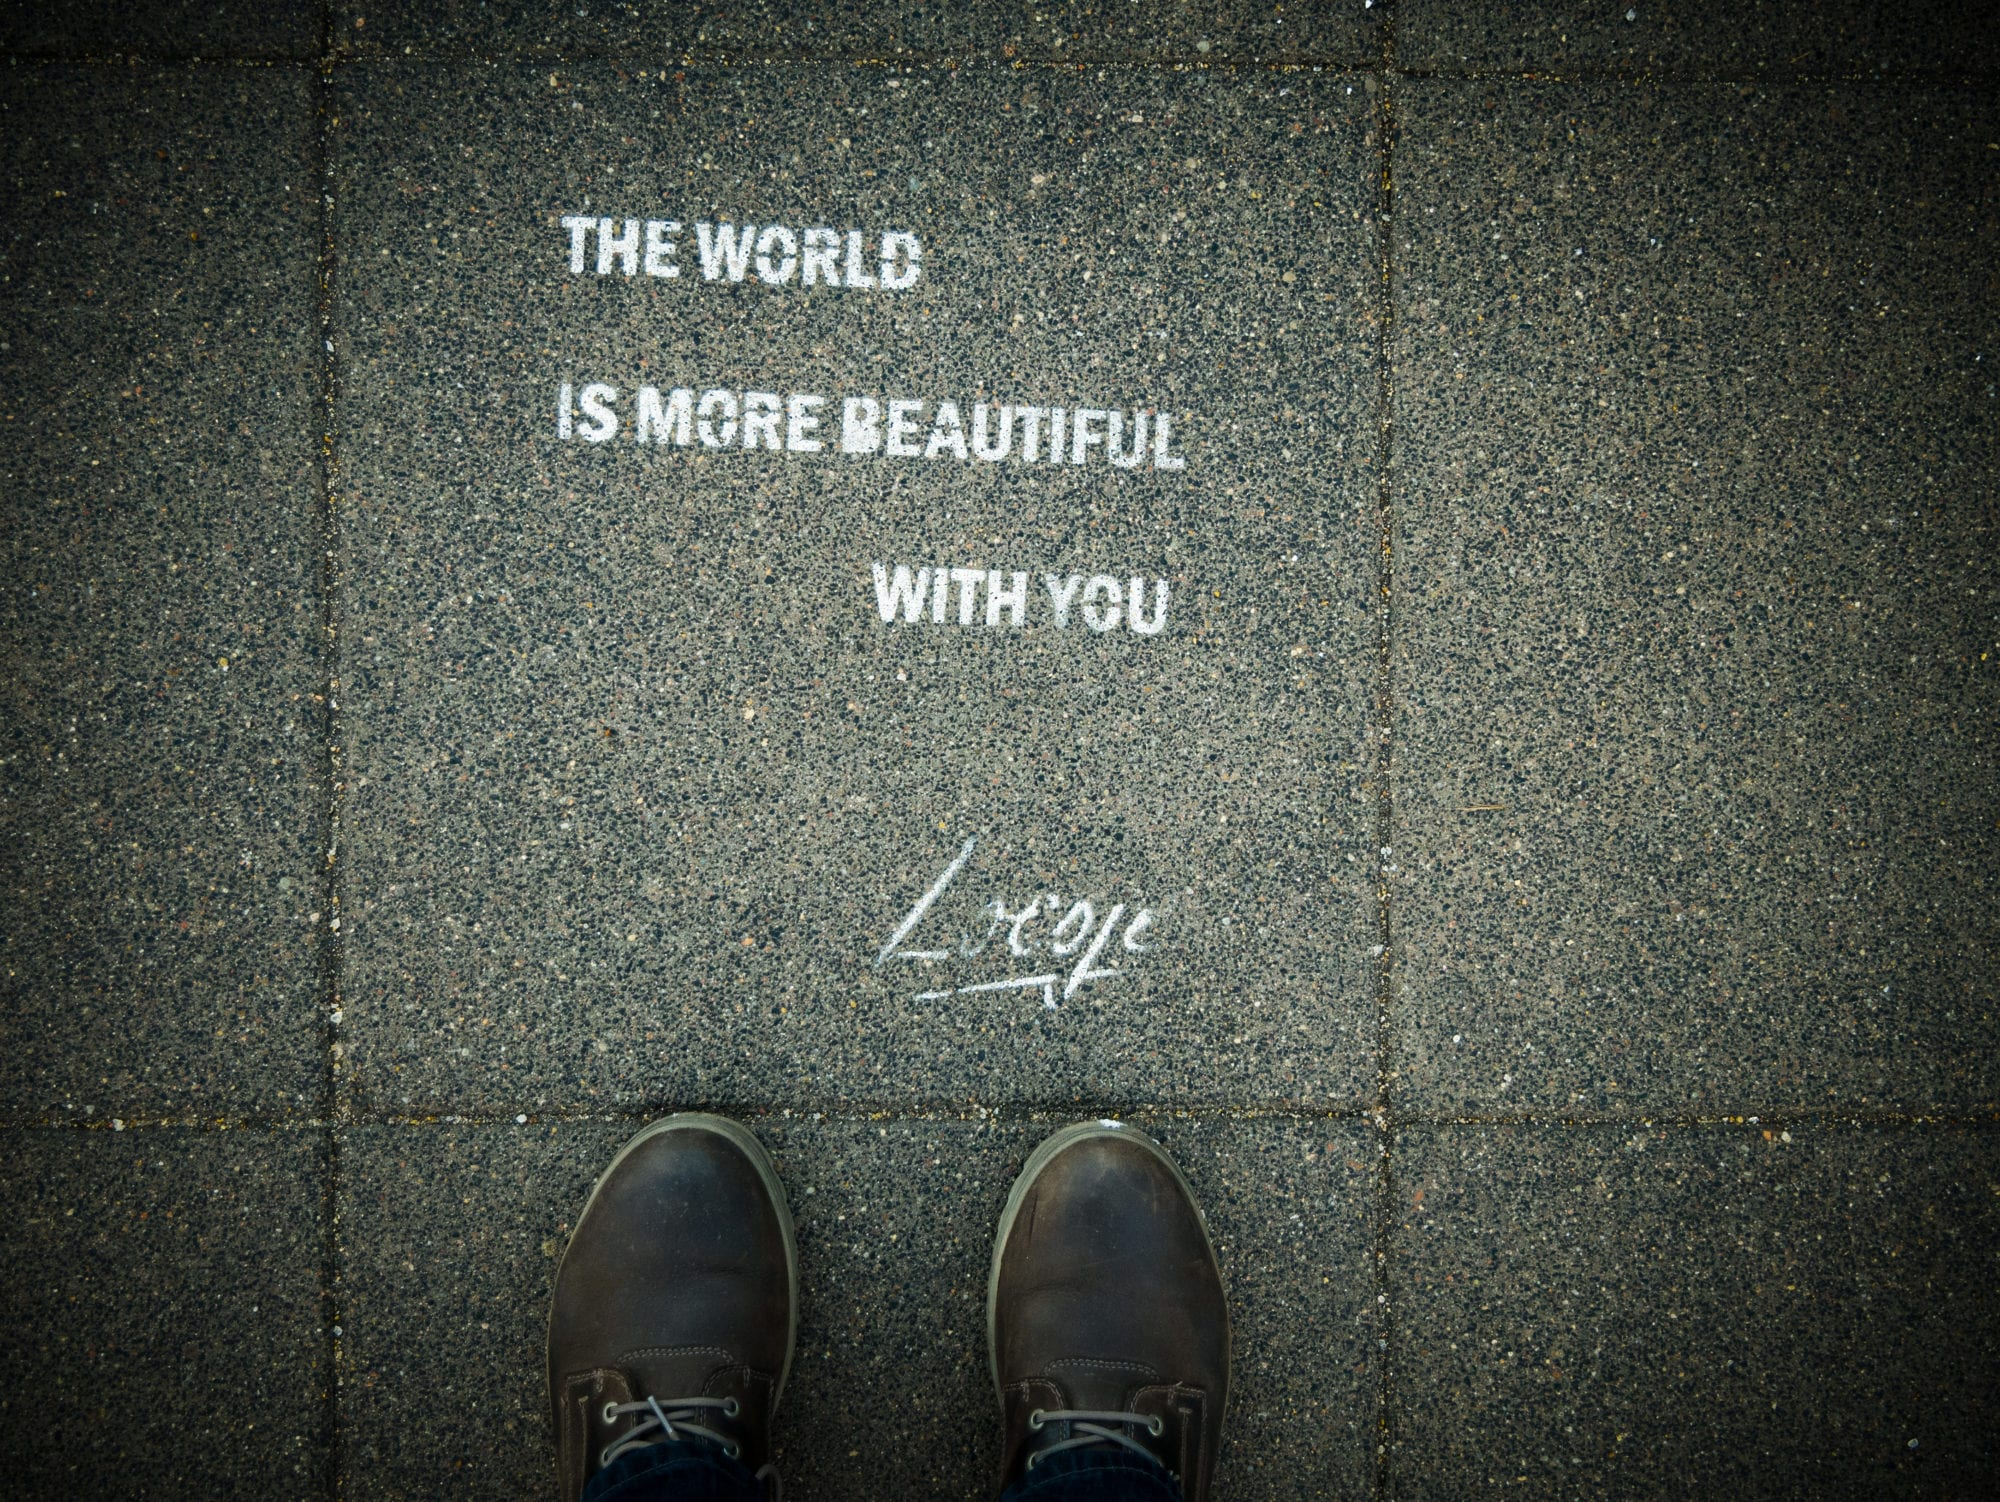 words written on pavement the world is more beautiful with you